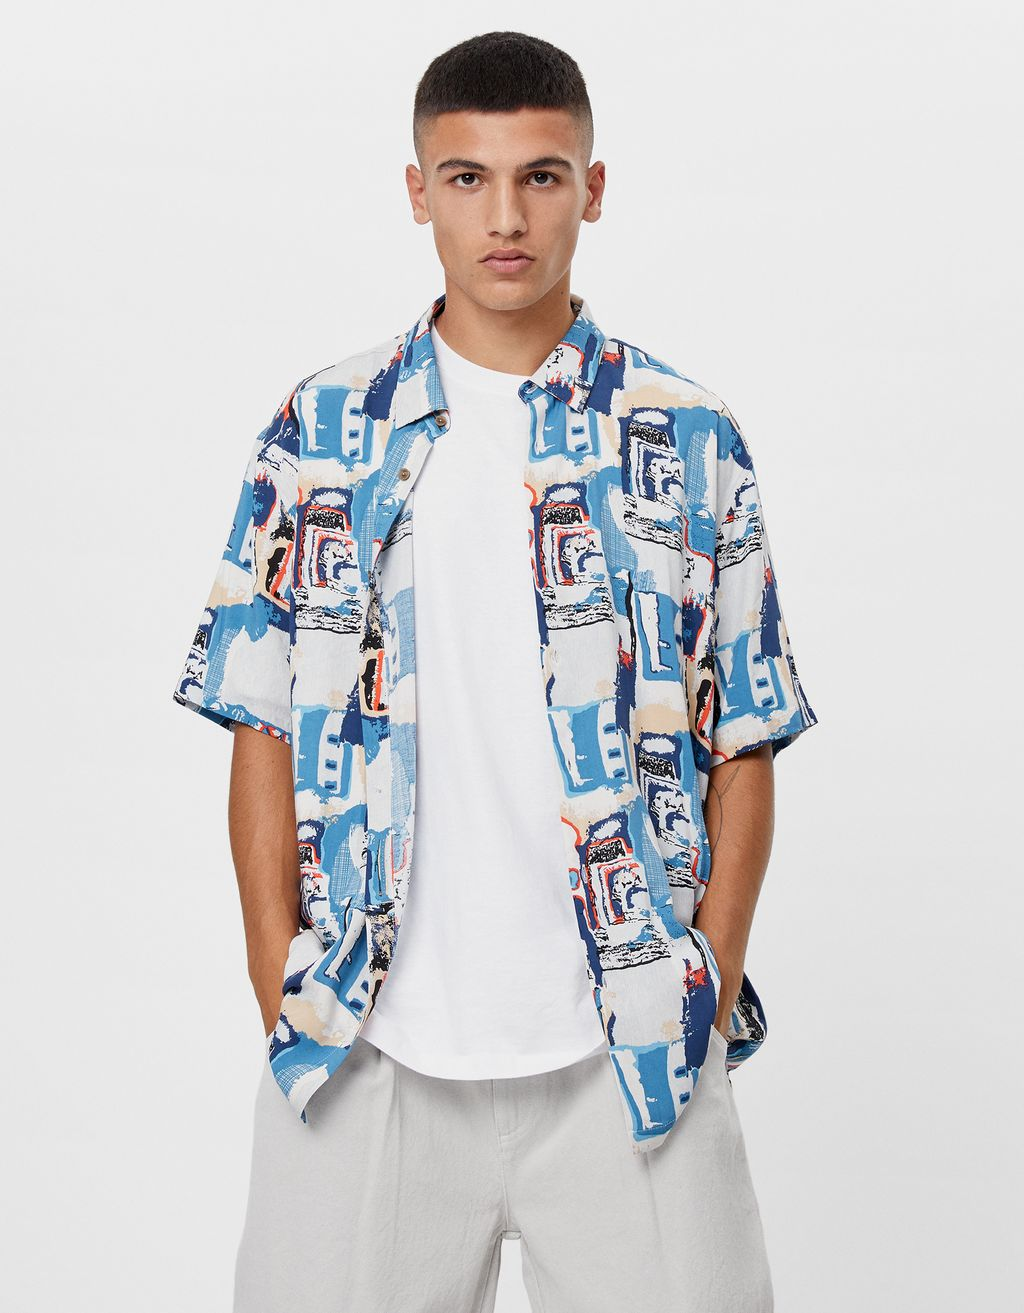 Camisa estampado abstrato